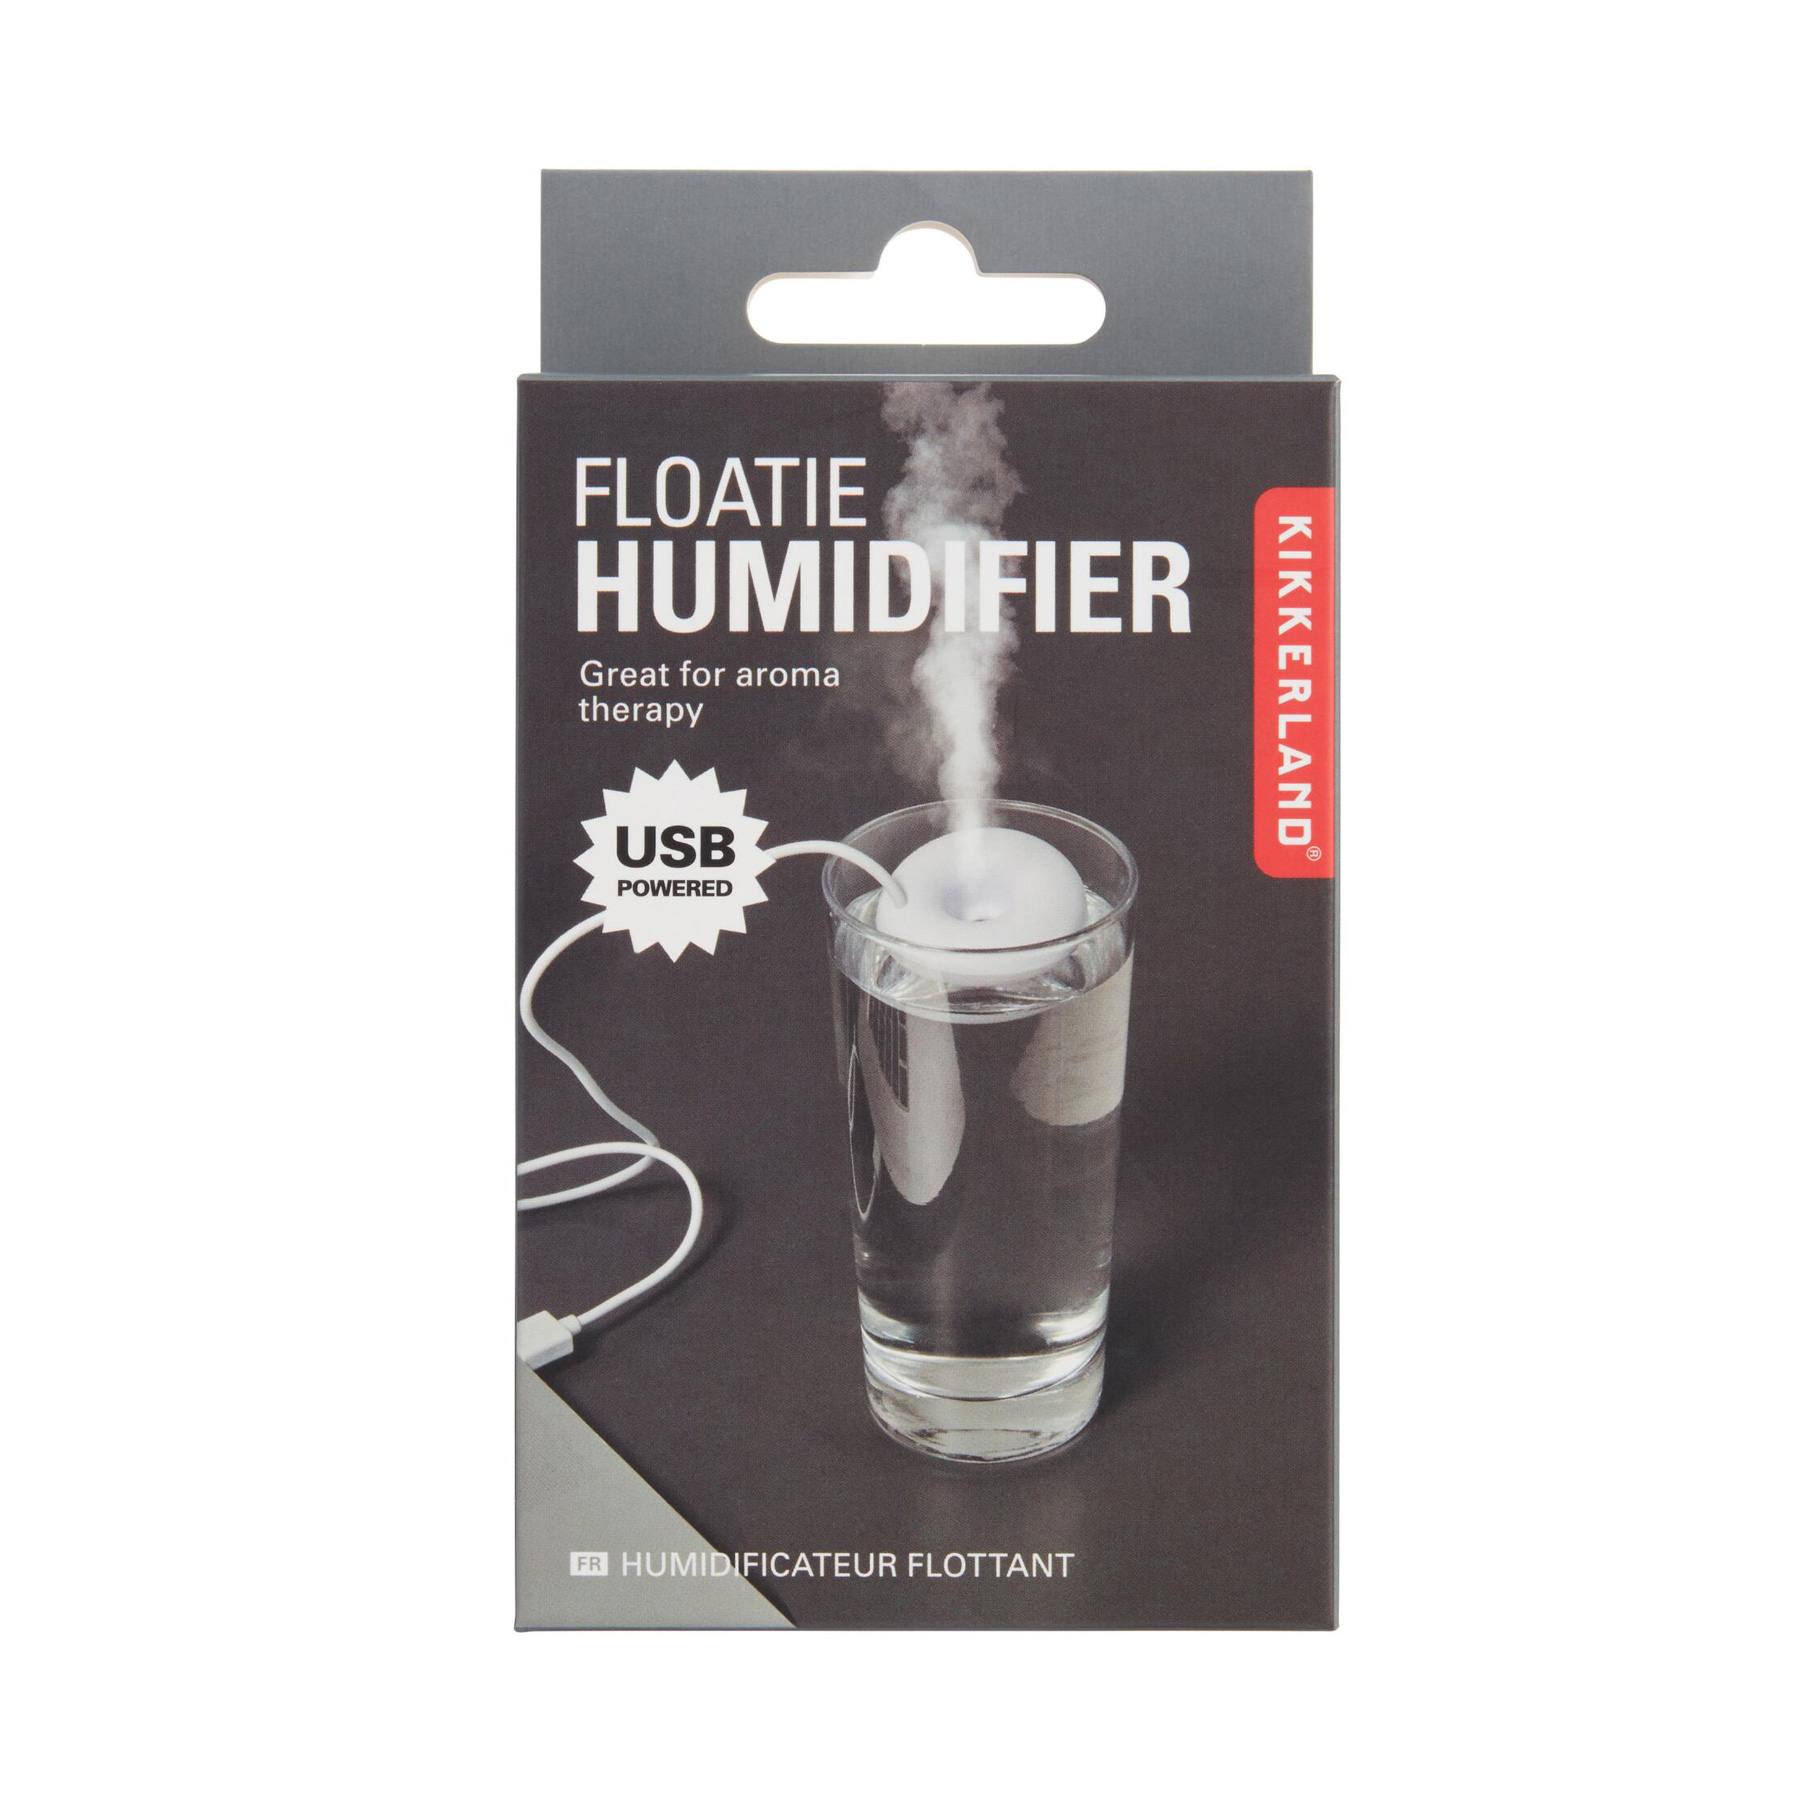 Gifts for Employees, Coworkers, and Bosses 2020: mini floating humidifier